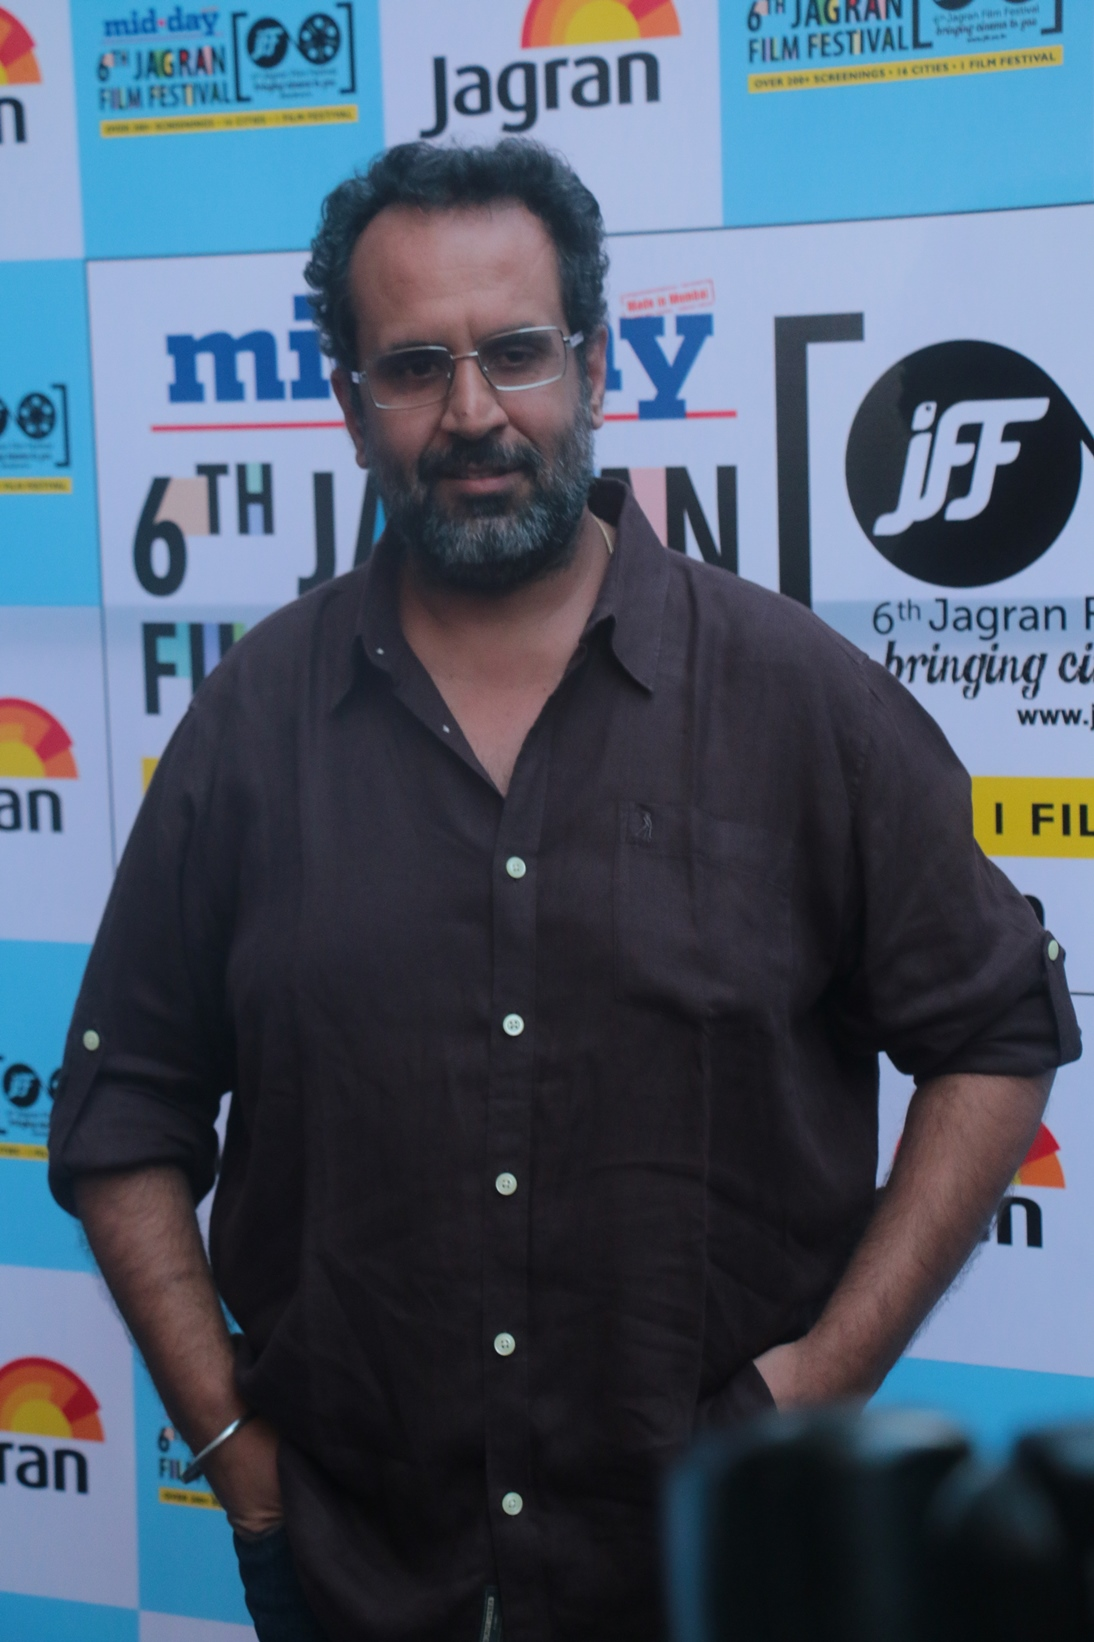 Director Anand Rai at the Opening Ceremony of the 6th Jagran Film Festival 2015